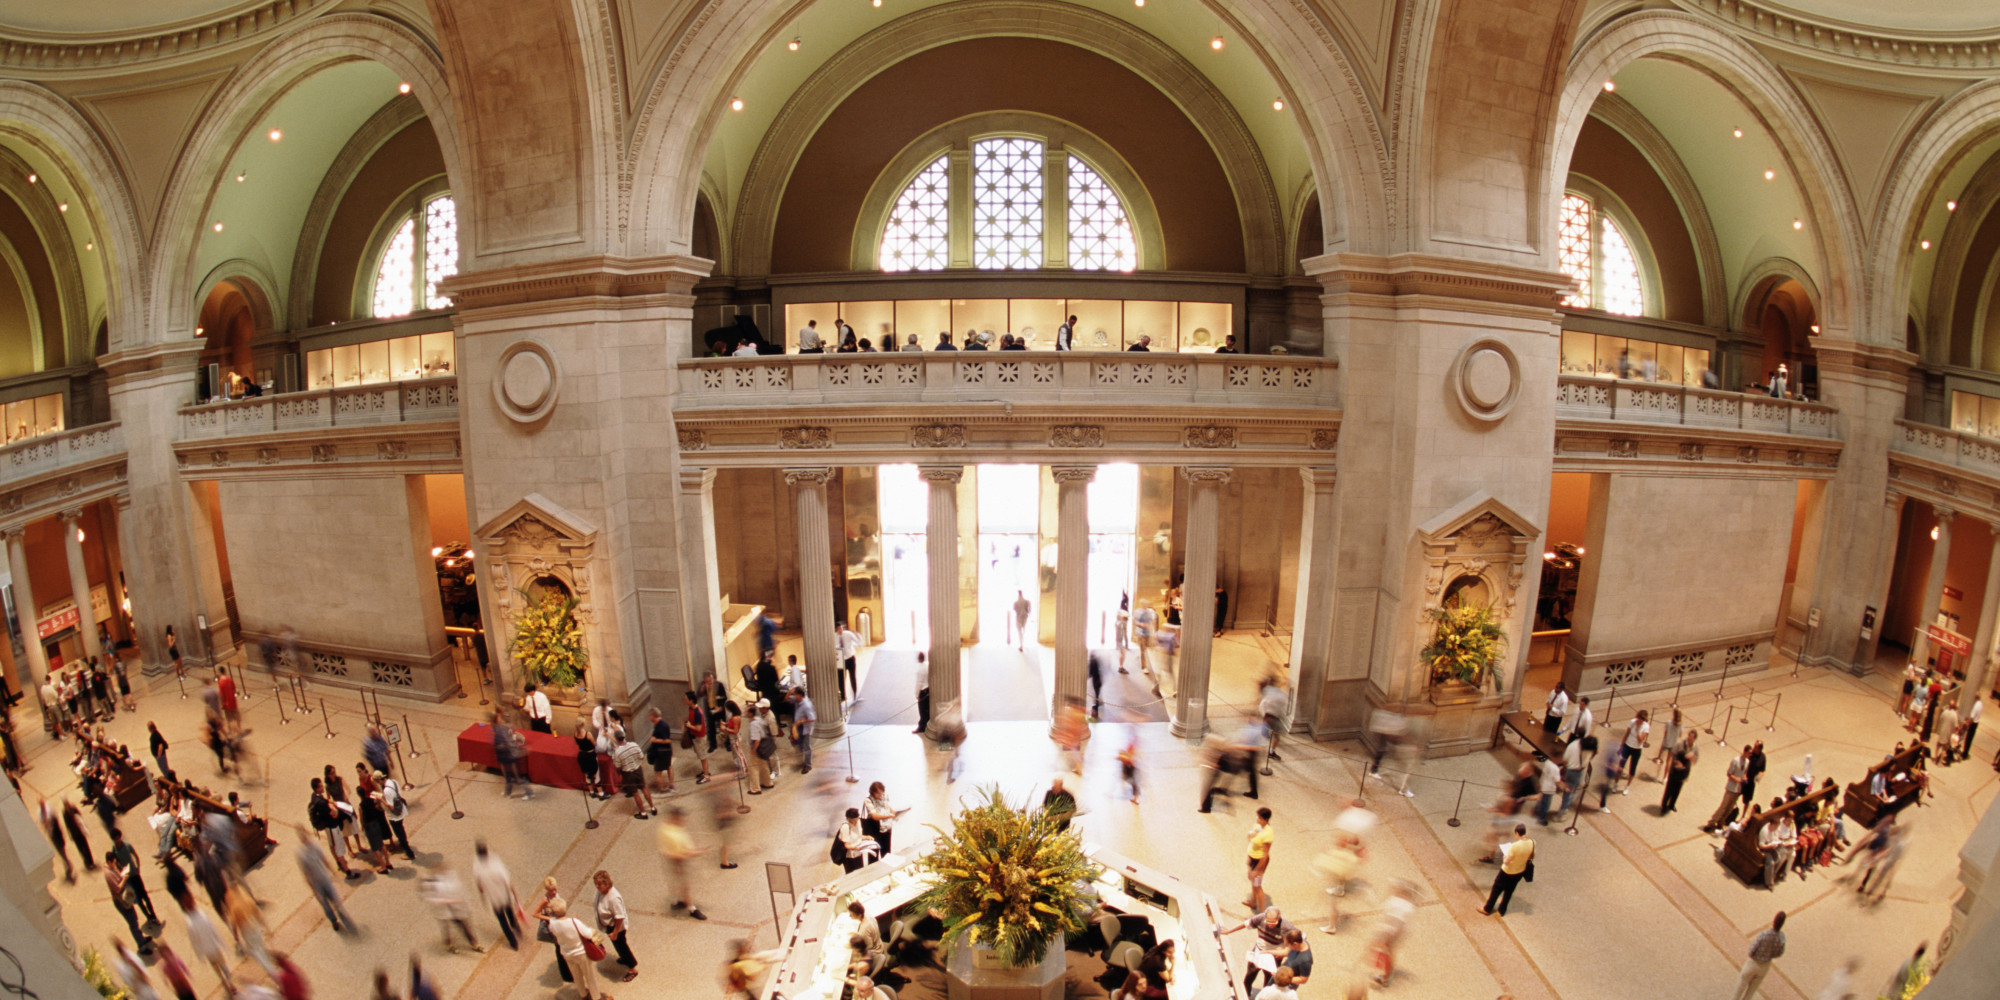 an overview of the metropolitan museum of art in new york city Discover the museum's wide-ranging collection, exhibitions, and special spaces, as well as dining options and other useful services.